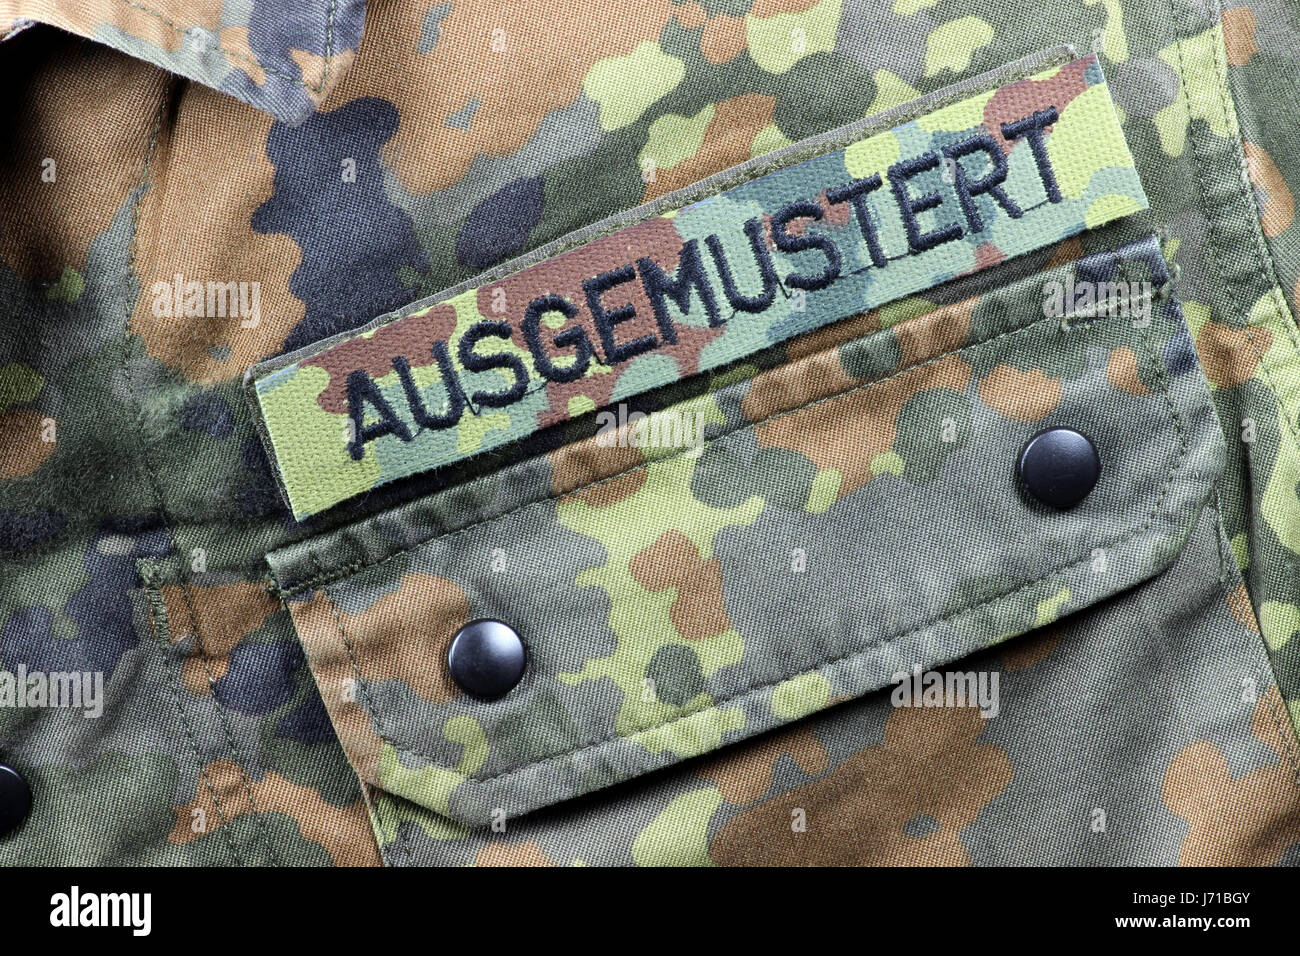 German camouflage uniform jacket patched WITHDRAWN FROM SERVICE instead of name tag - Stock Image